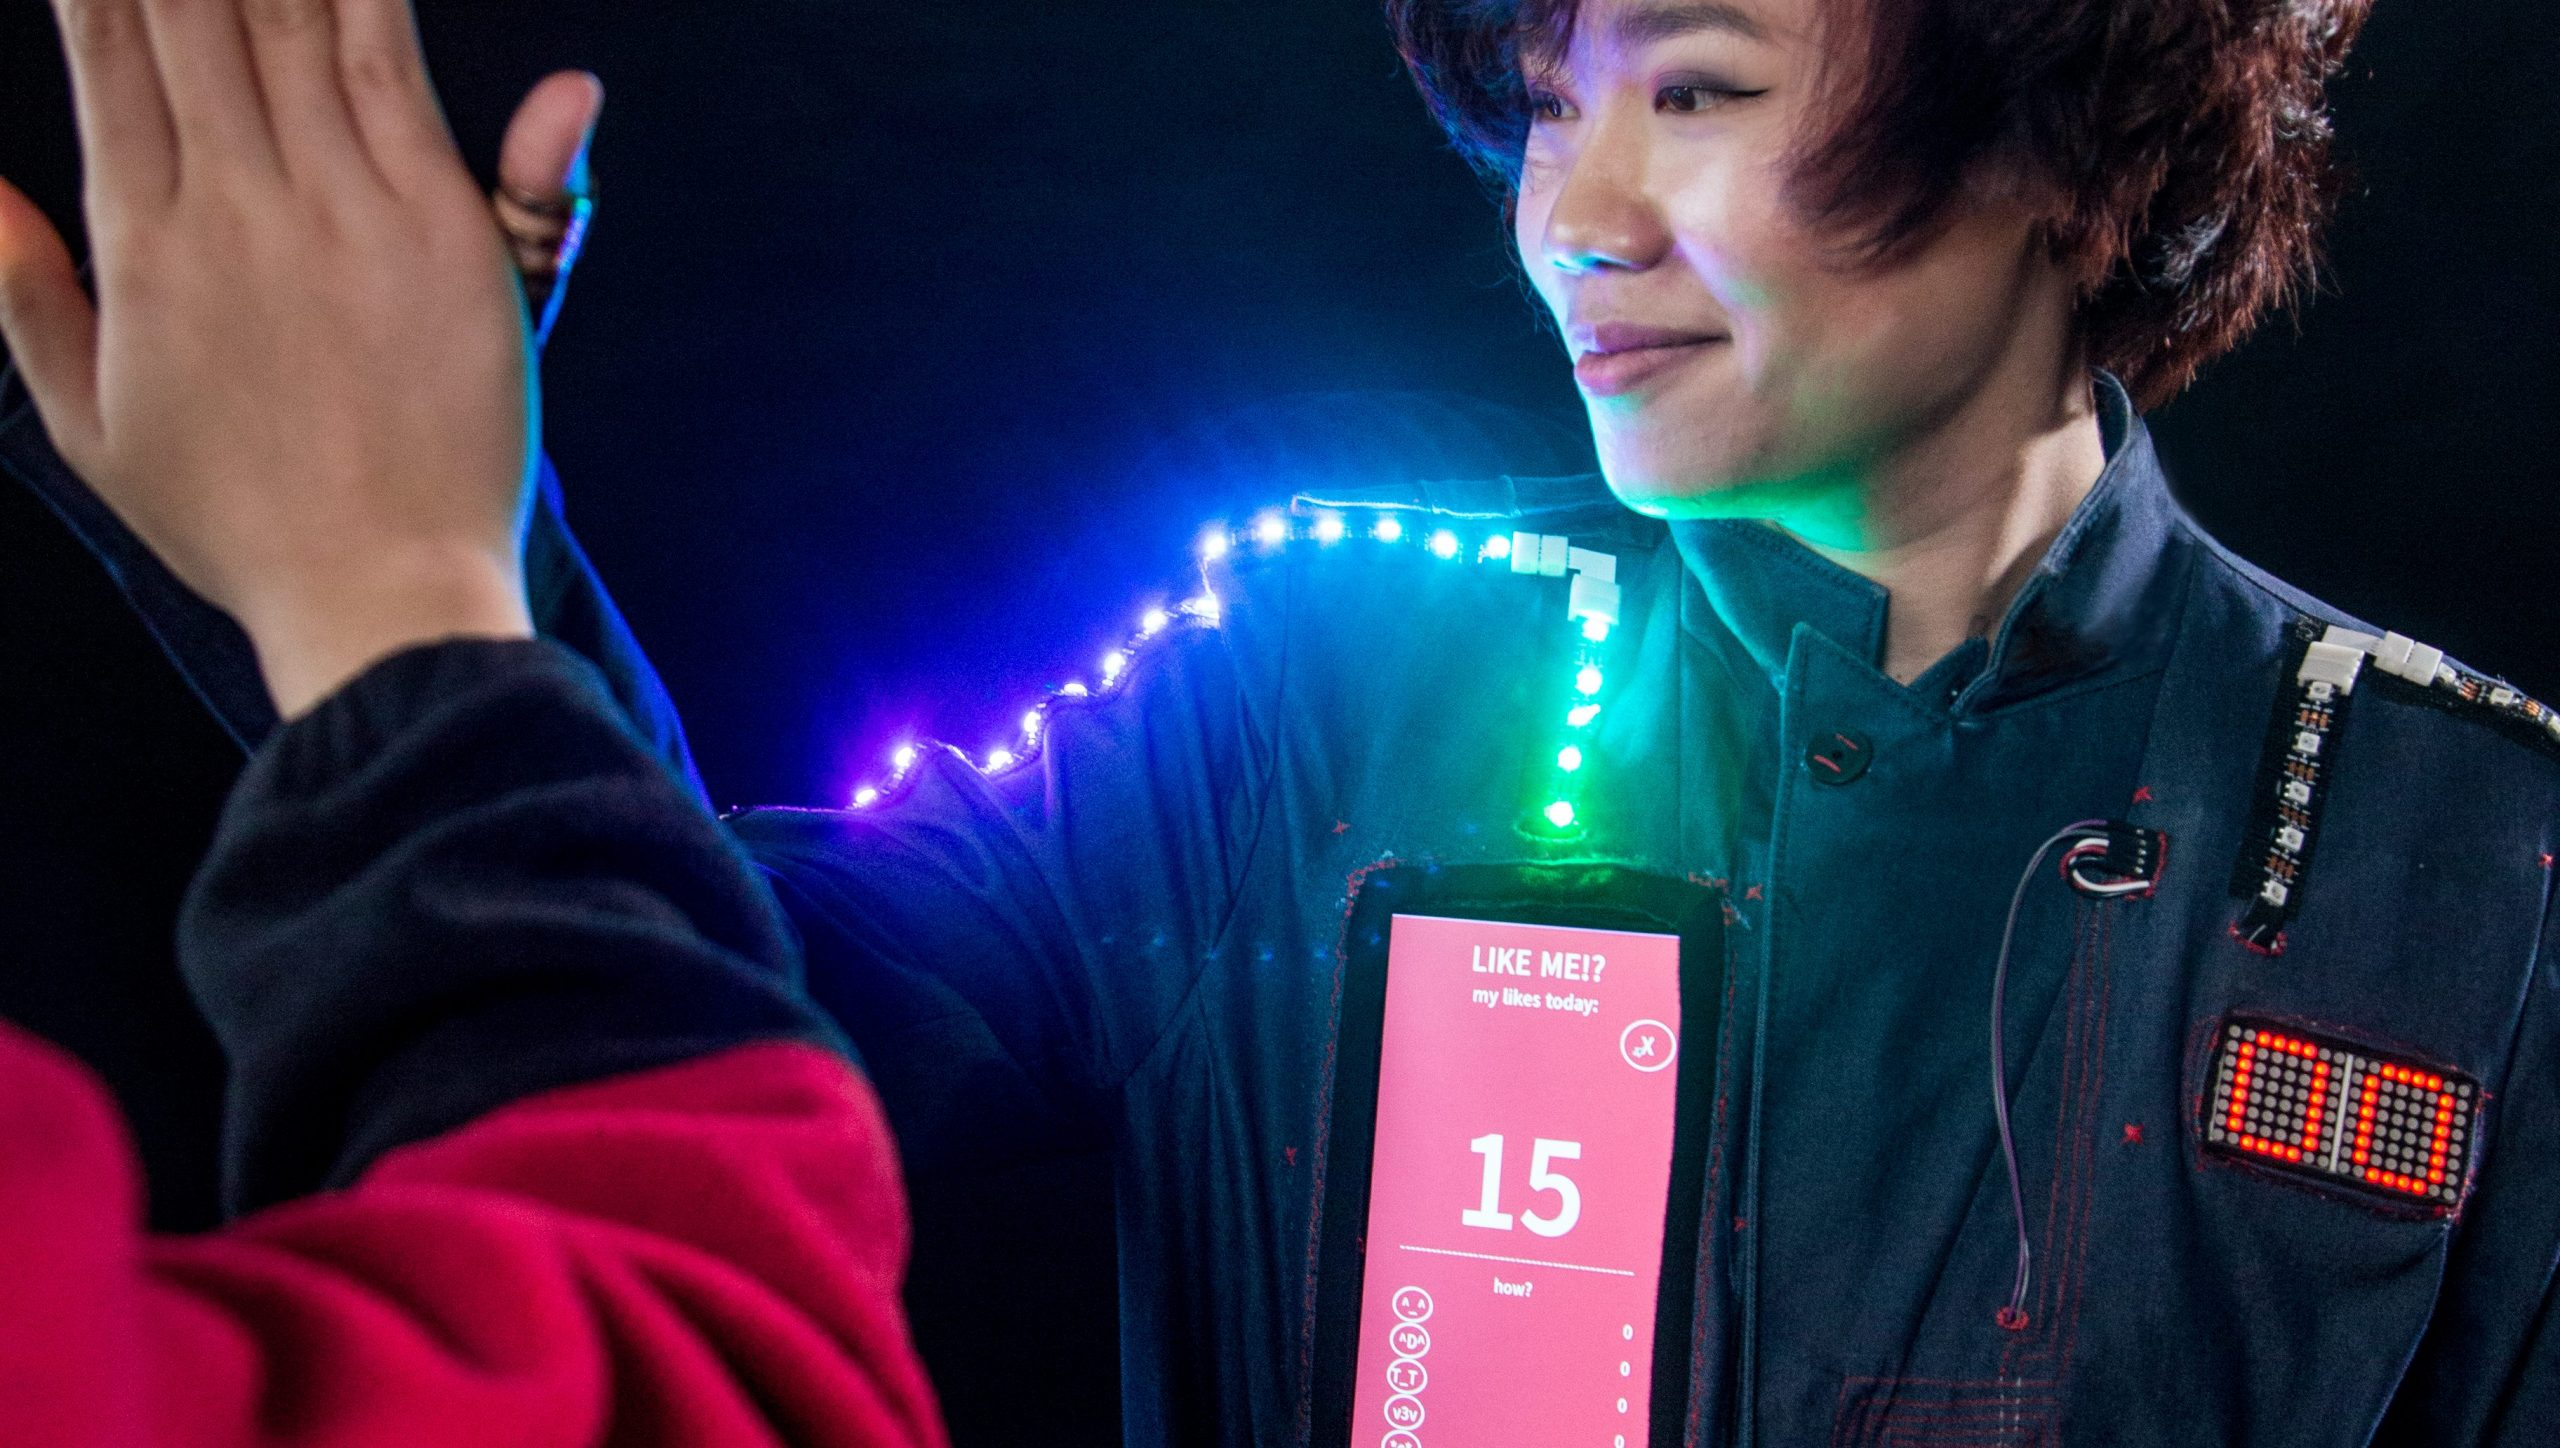 A MonthOfMaking project: Someone wearing a wearable tech project featuring LEDs, a two-digit LED matrix, and a tablet screen. The person is high-fiving someone who is out of view.